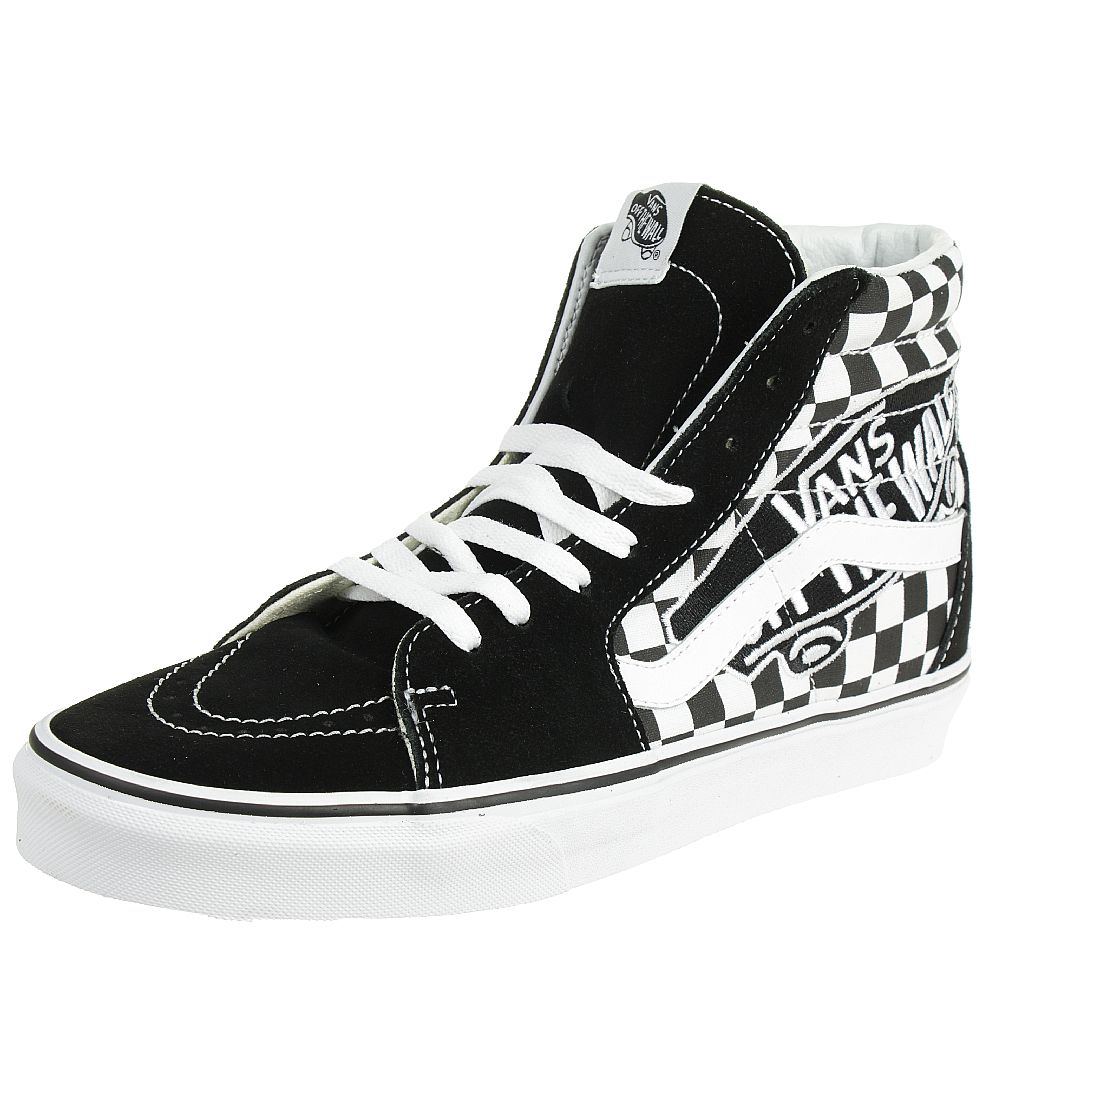 free shipping wide range top design VANS Sk8-Hi Vans Patch Sneaker VN0A38GEUPV1 checkerboard ...